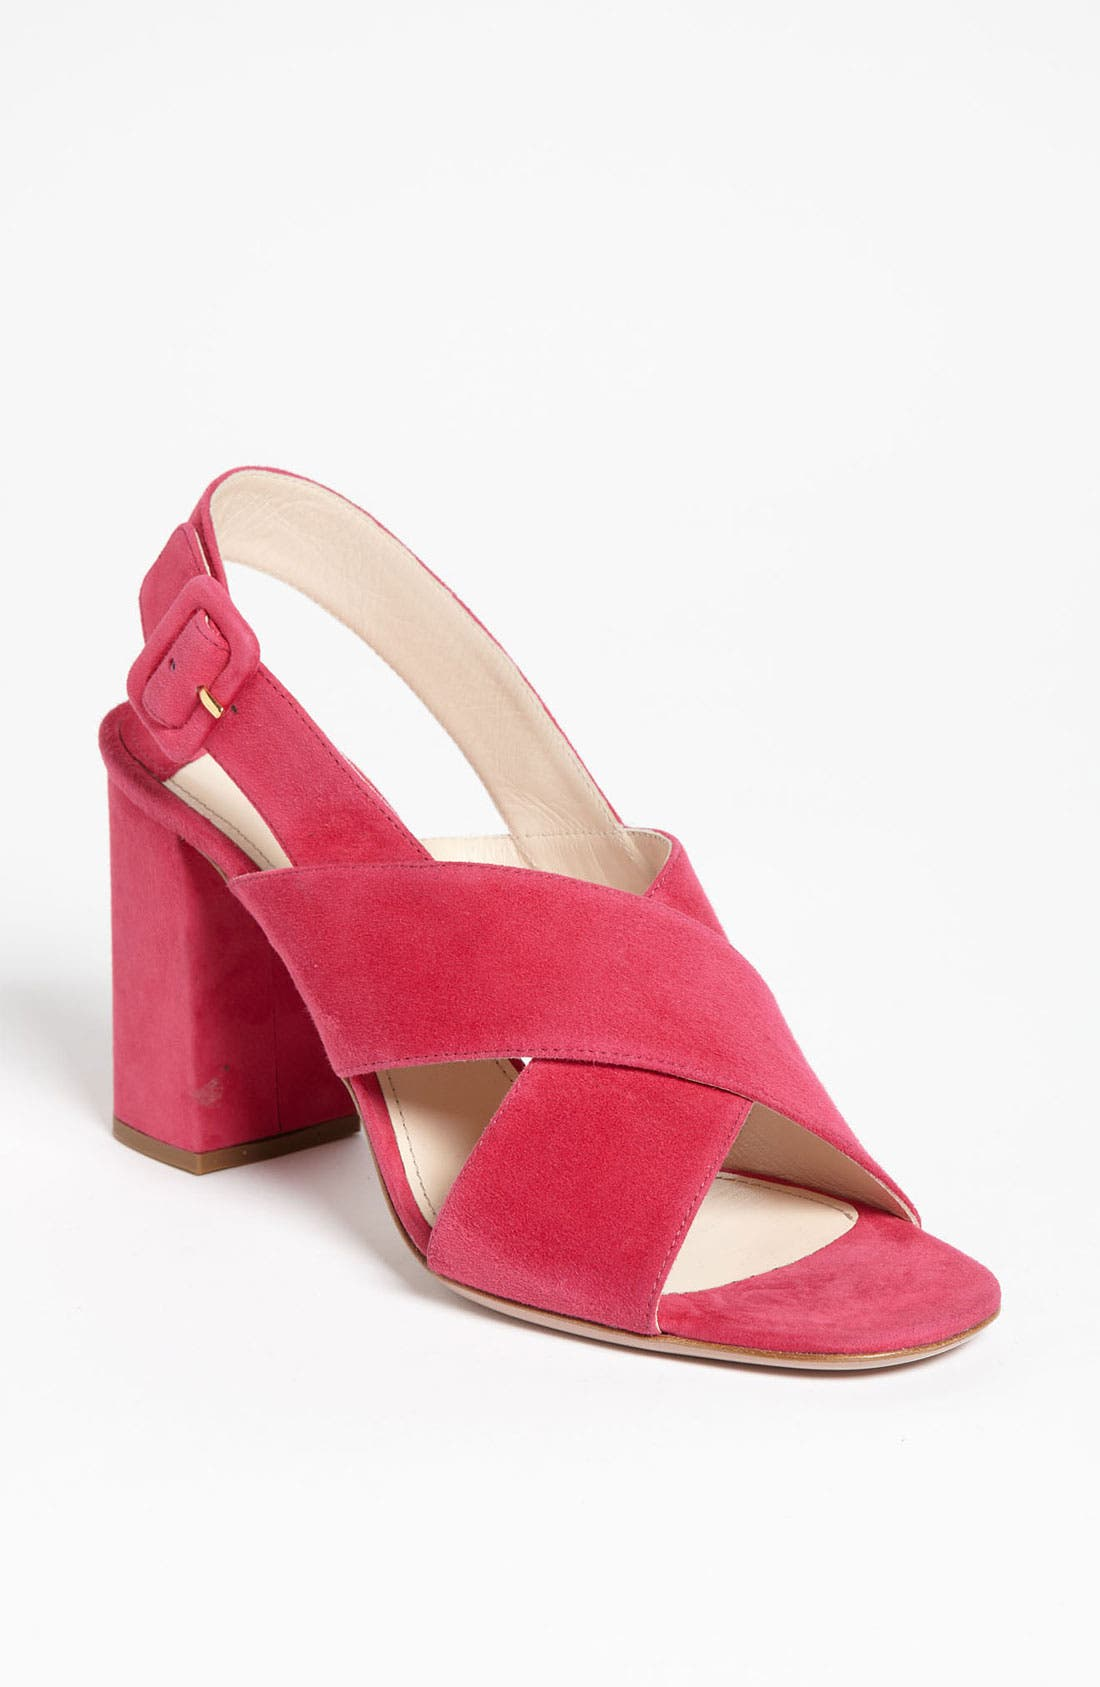 Alternate Image 1 Selected - Prada Crisscross Slingback Sandal